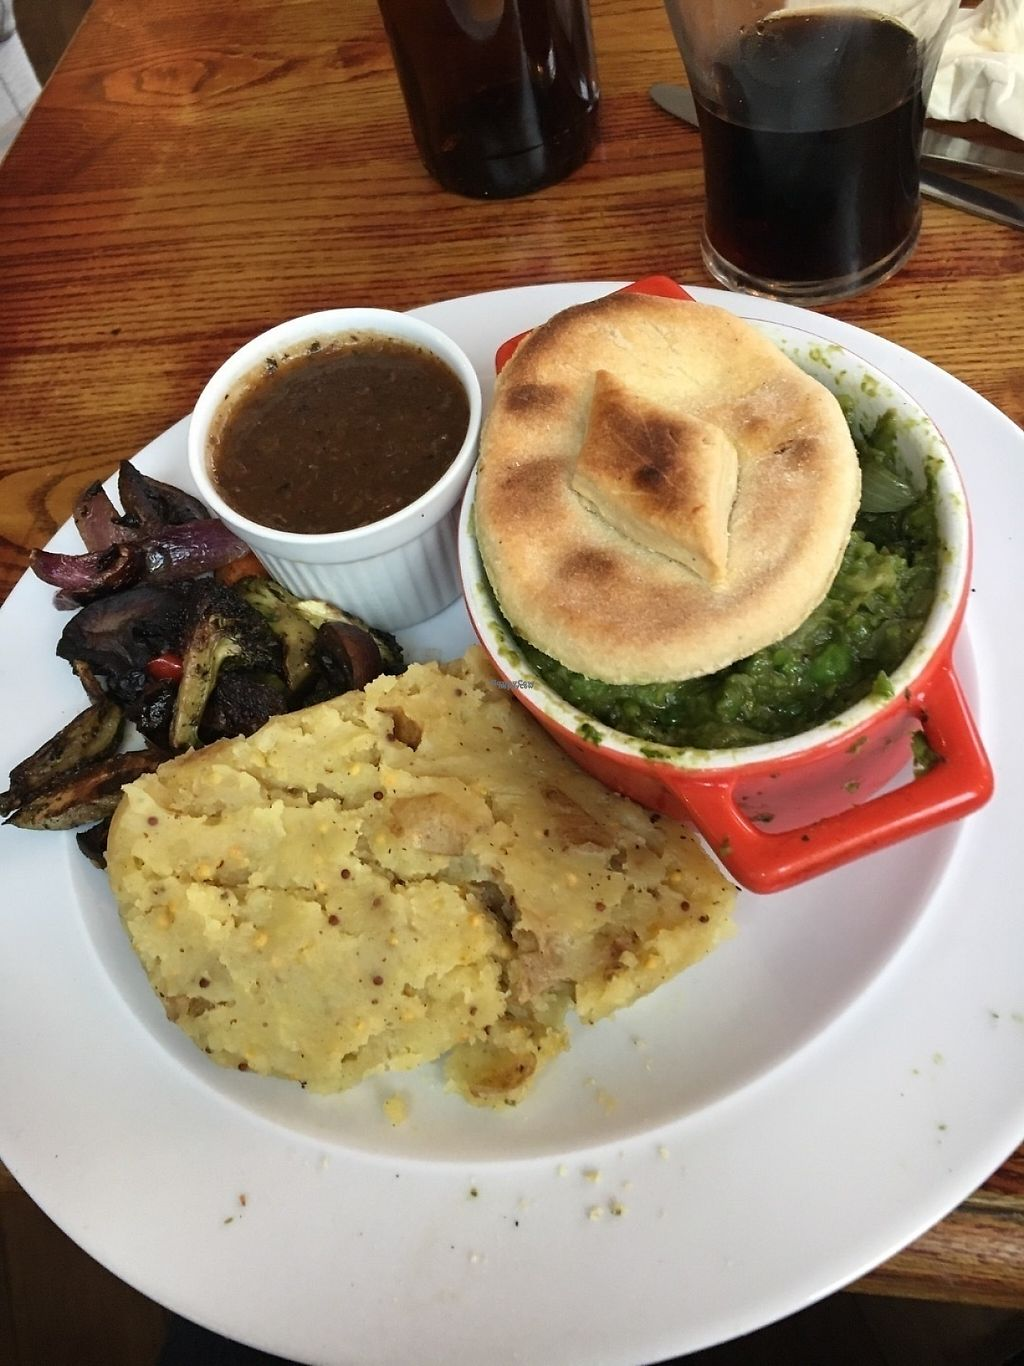 "Photo of The Peacock  by <a href=""/members/profile/Tim_nottingham"">Tim_nottingham</a> <br/>Minted pea and onion pie.  <br/> January 8, 2017  - <a href='/contact/abuse/image/70771/209675'>Report</a>"